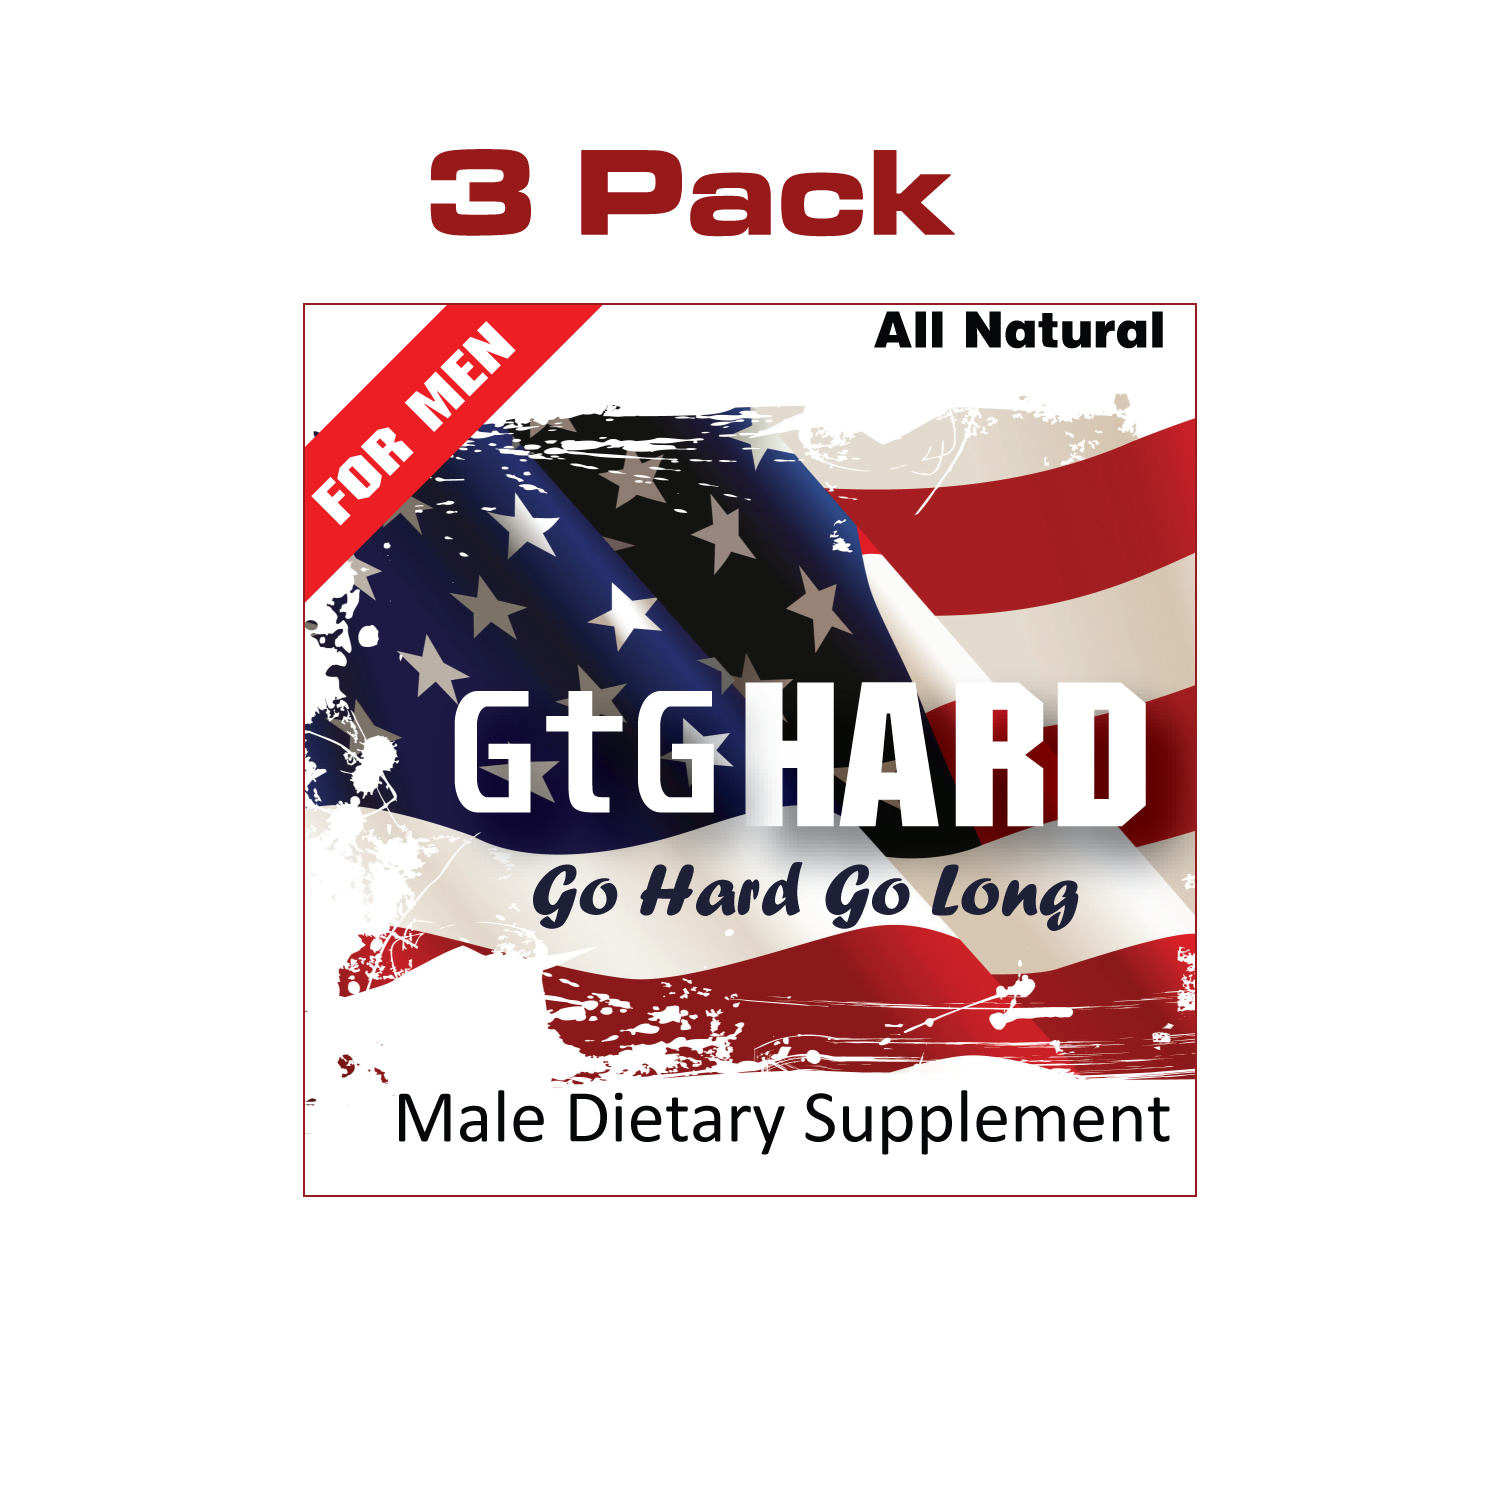 Gtg Hard Coupons & Promo codes